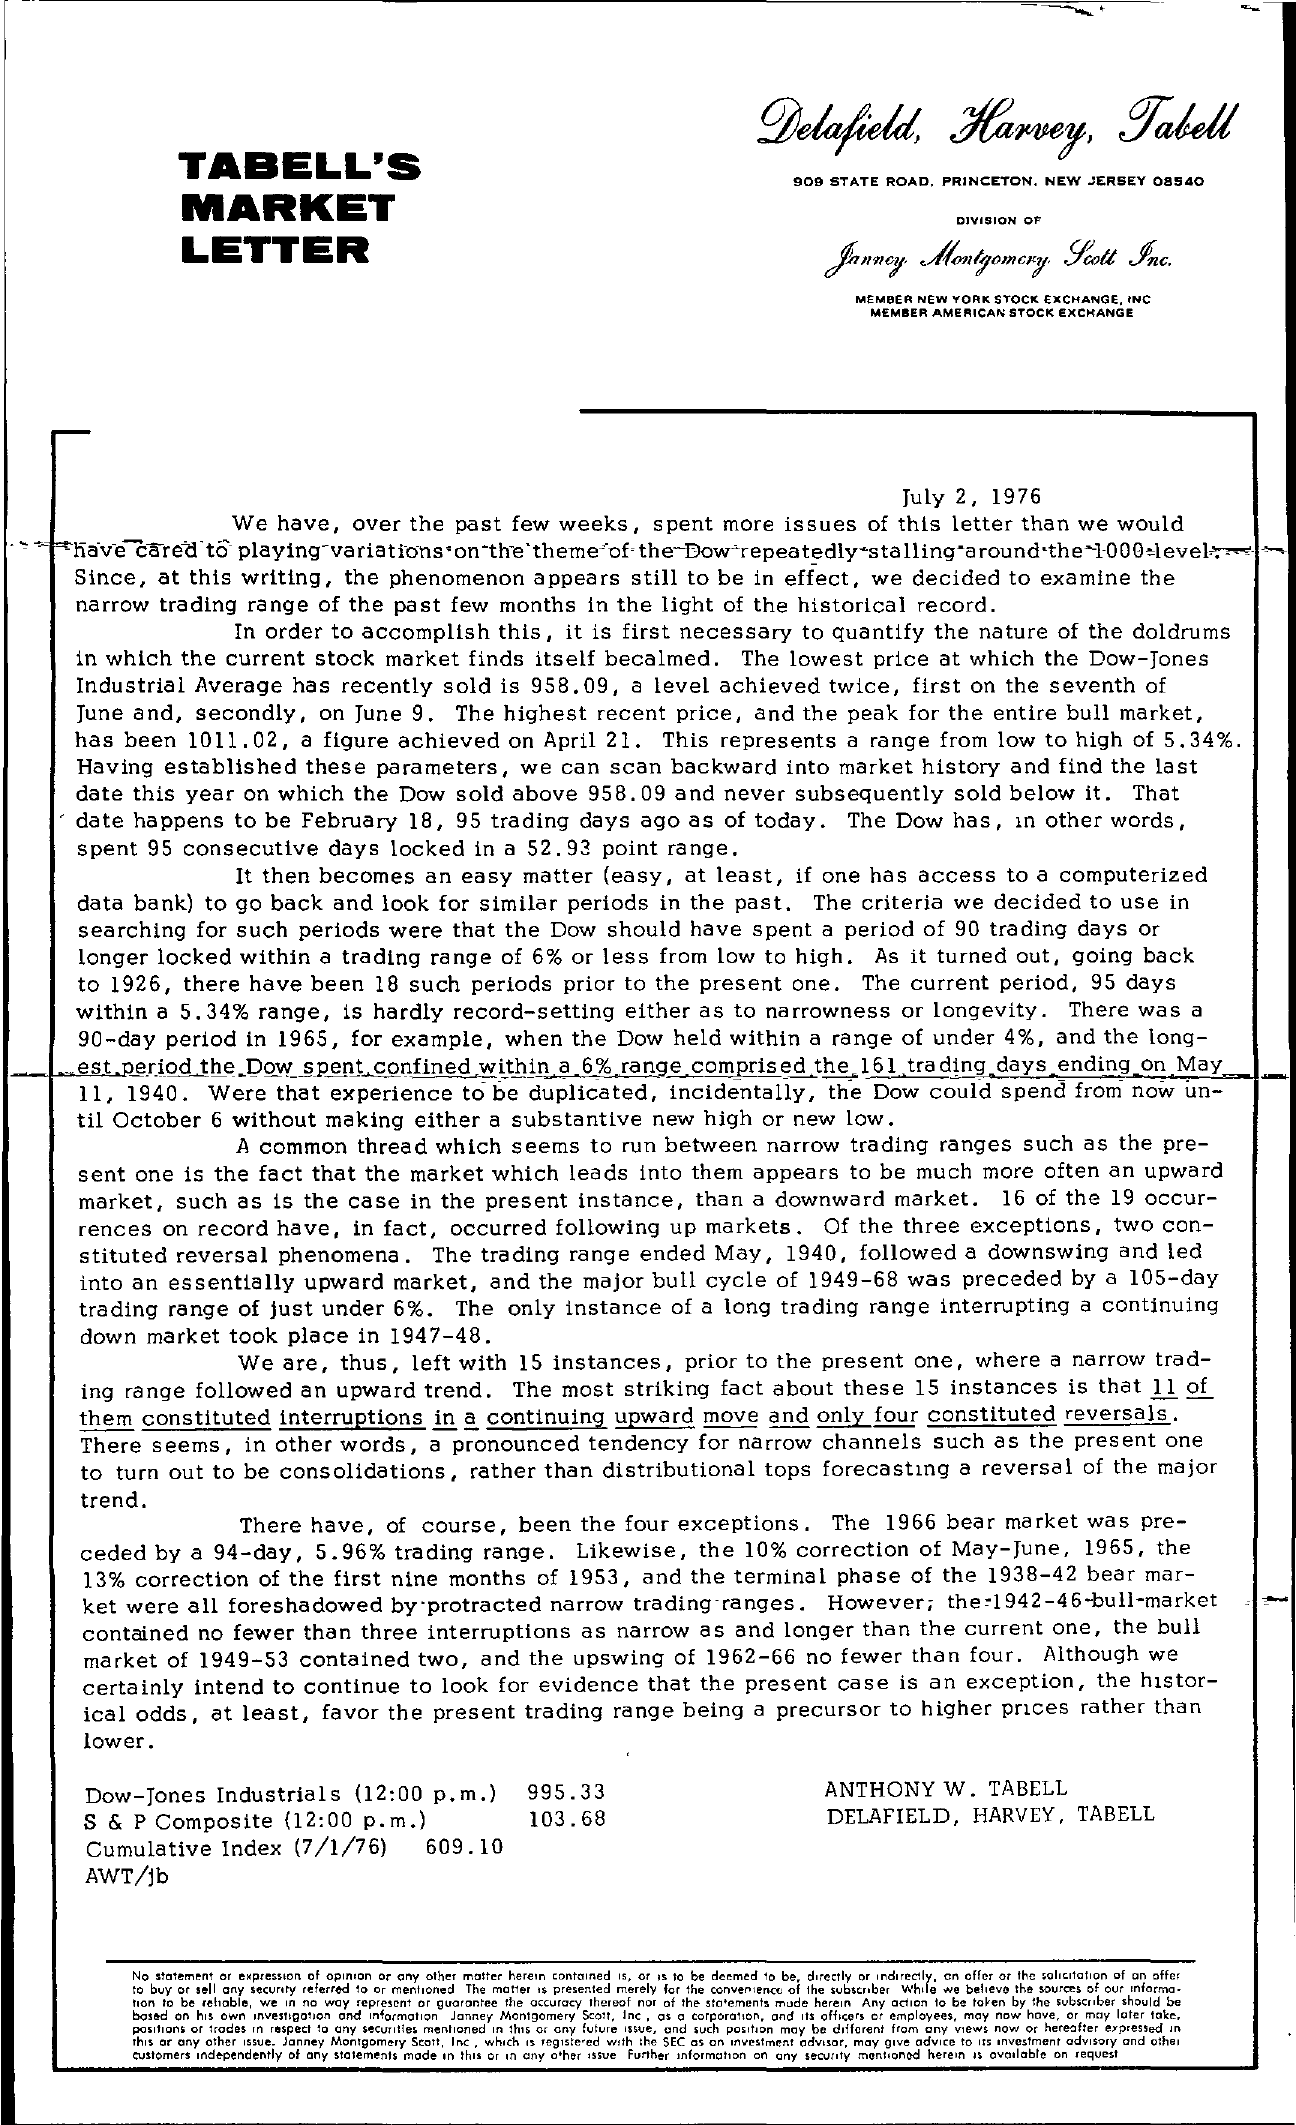 Tabell's Market Letter - July 02, 1976